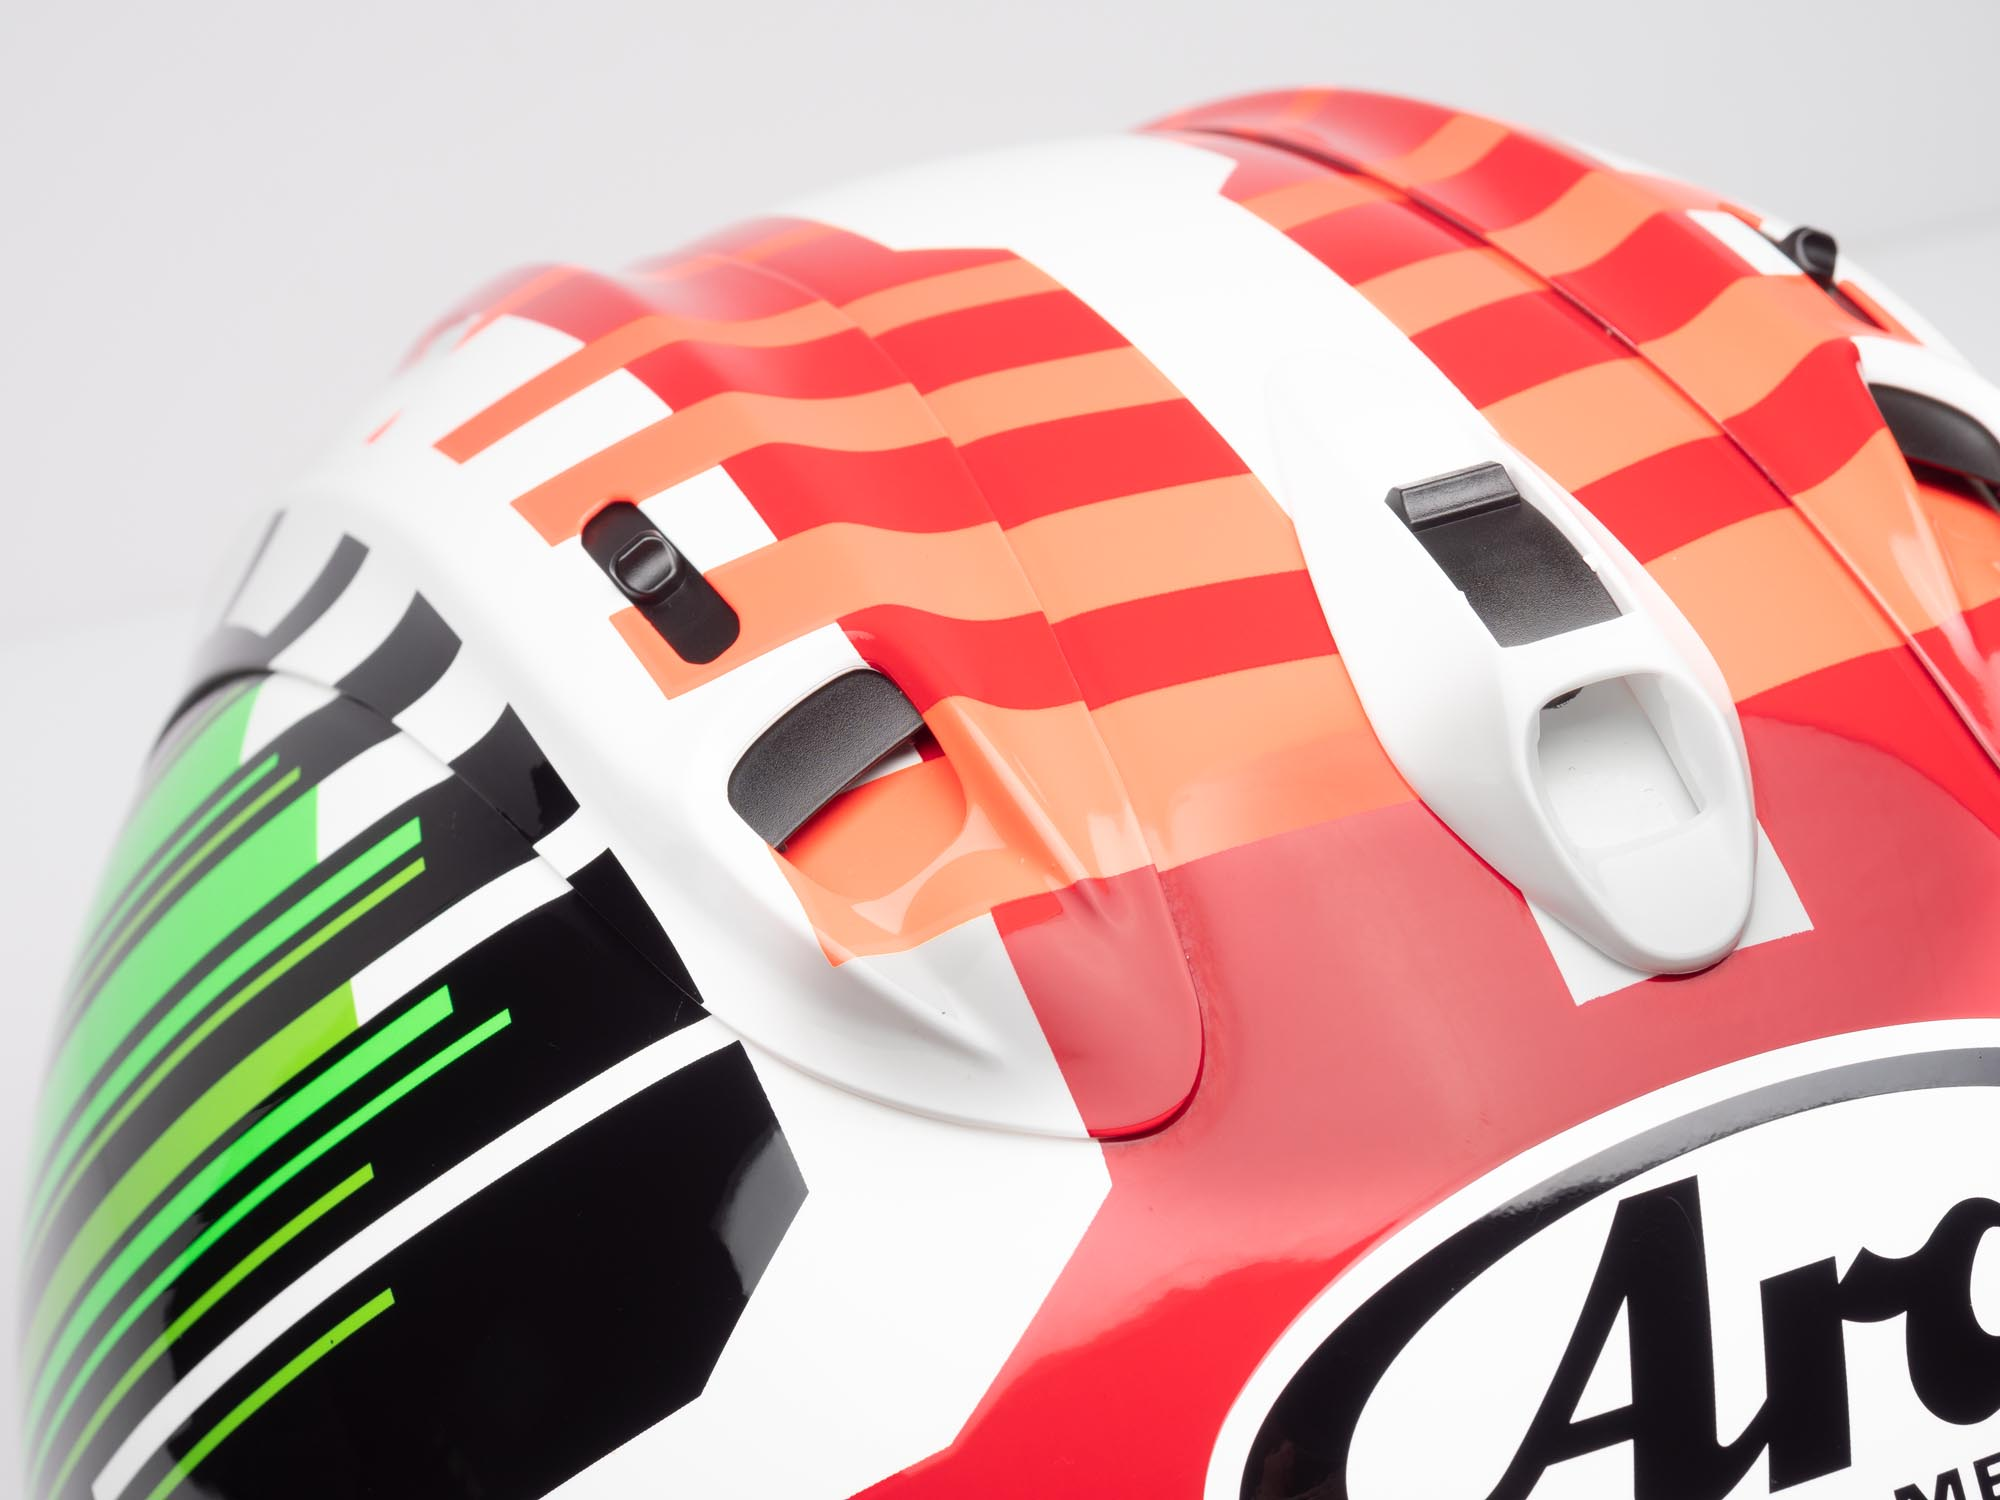 Arai Corsair-X Helmet top vents